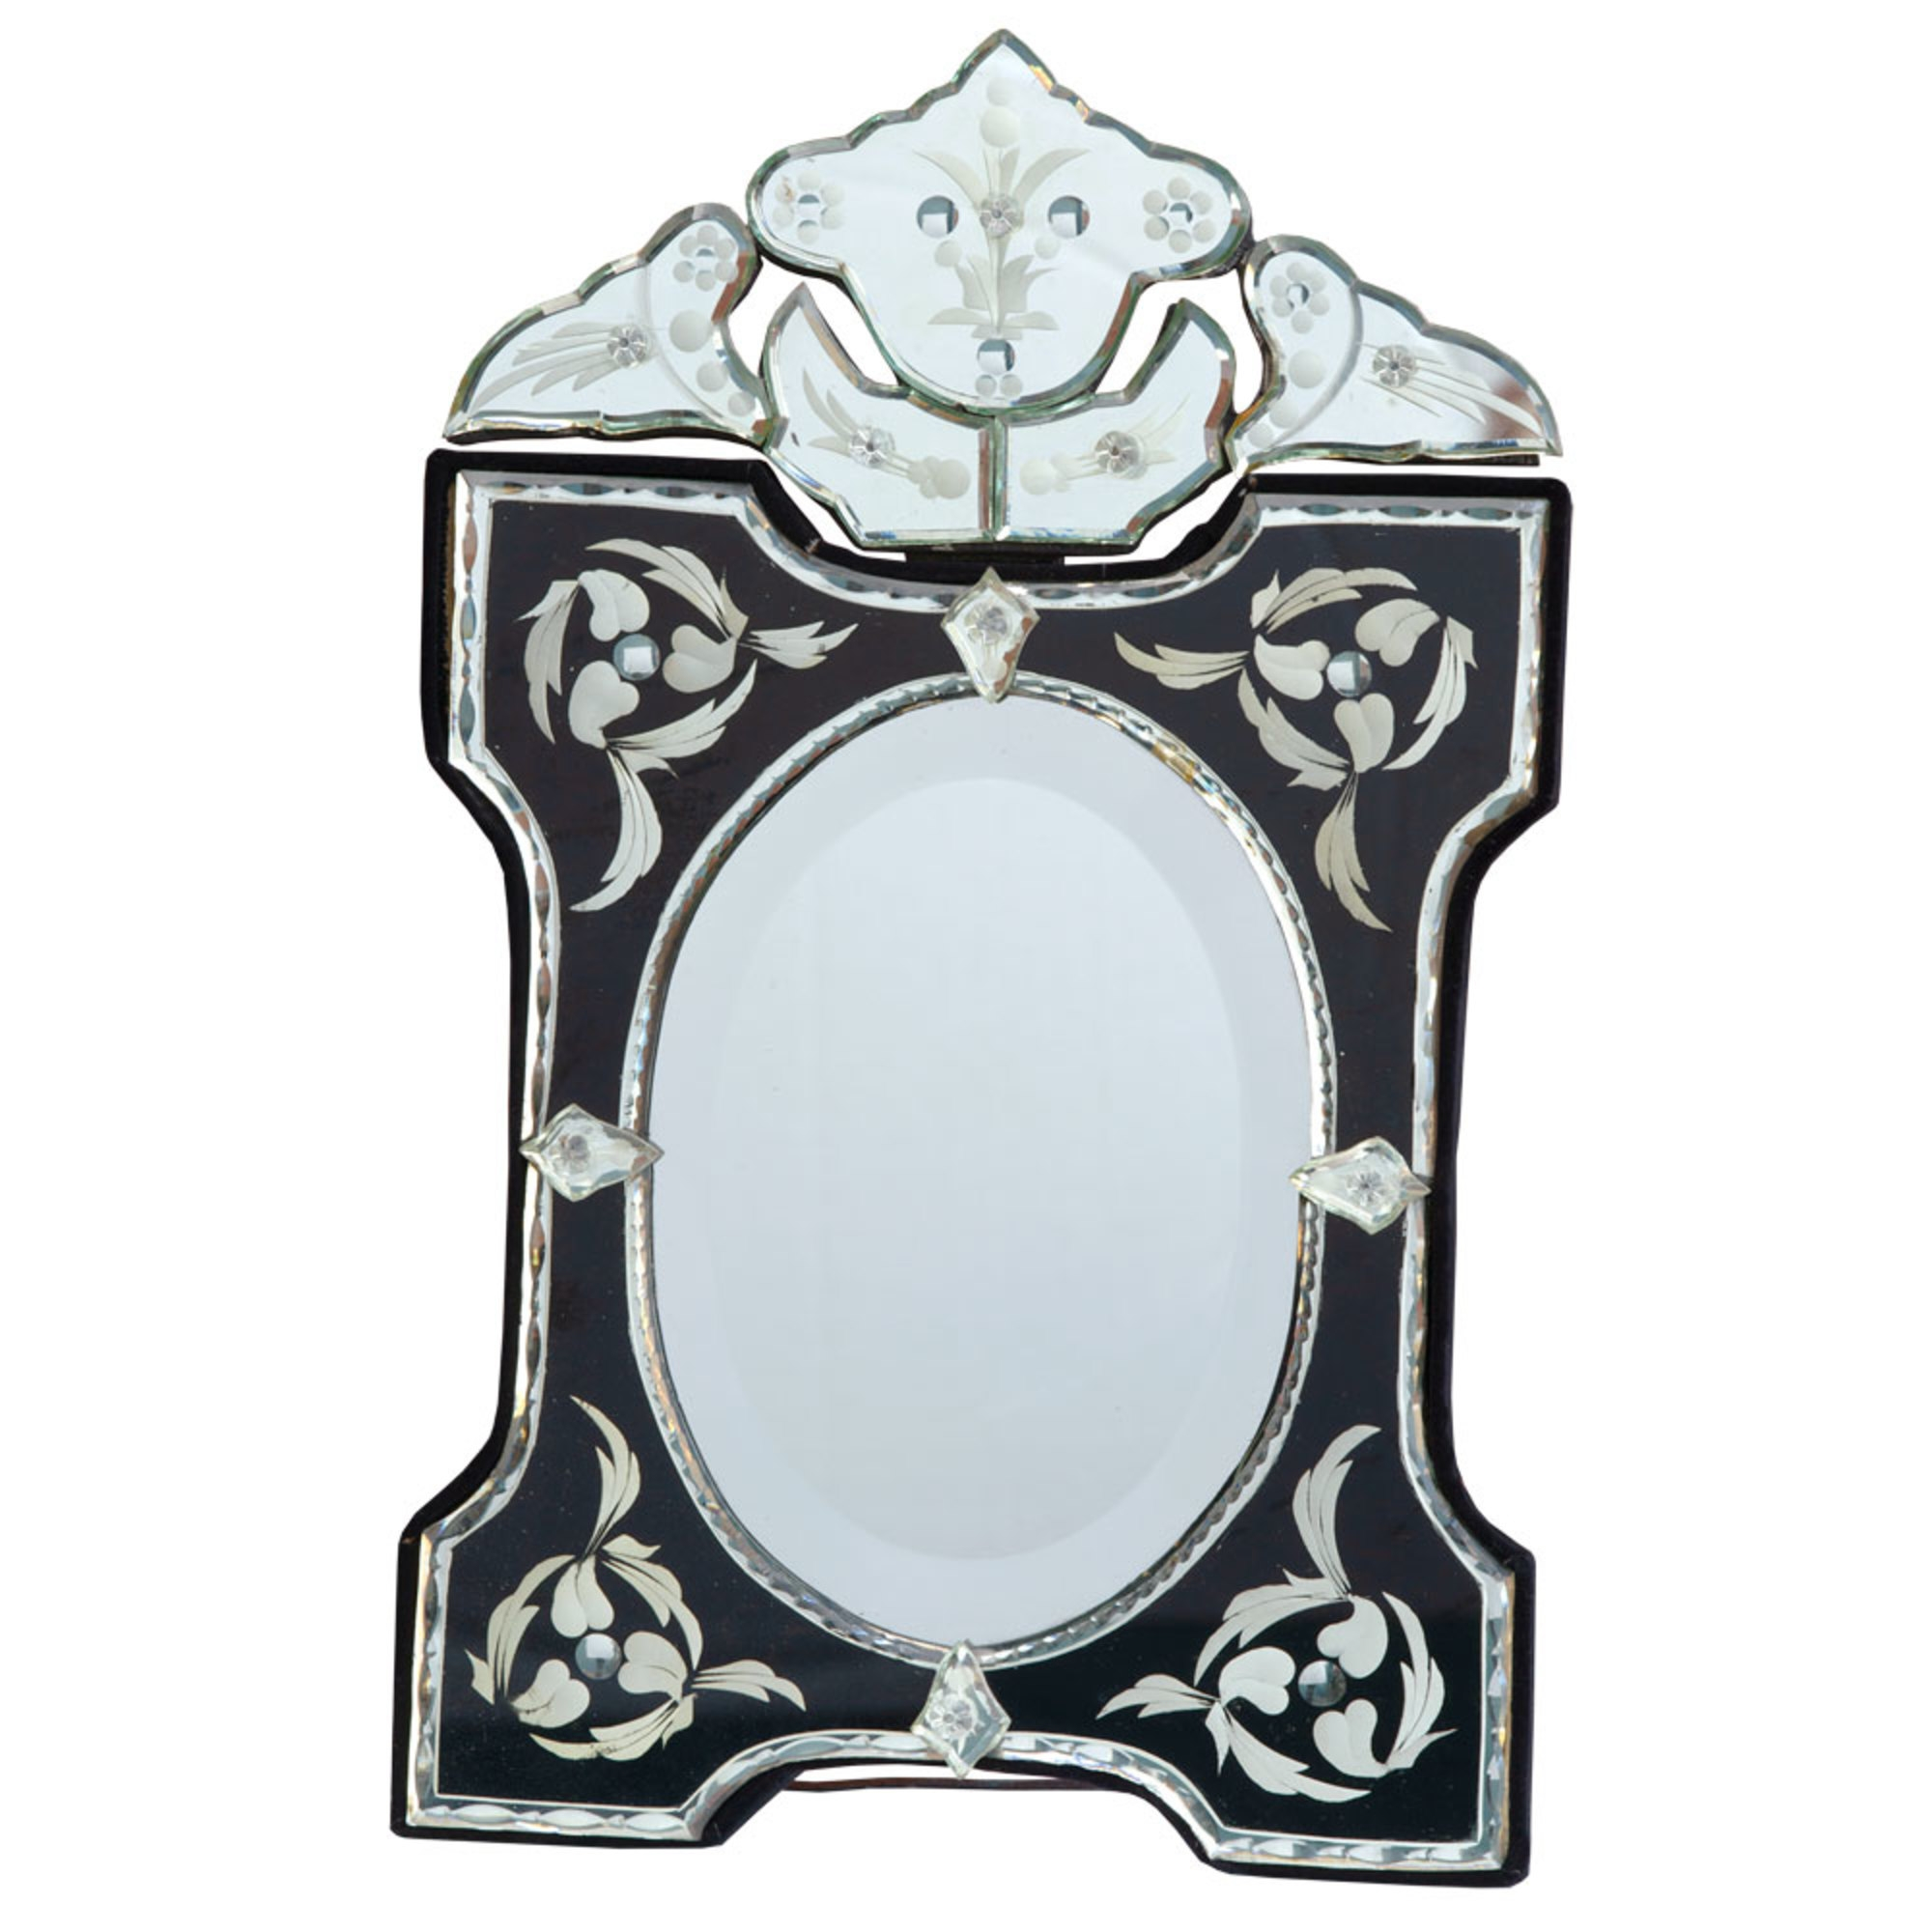 Venetian Scalloped & Arched Black & Clear Table or Wall Mirror